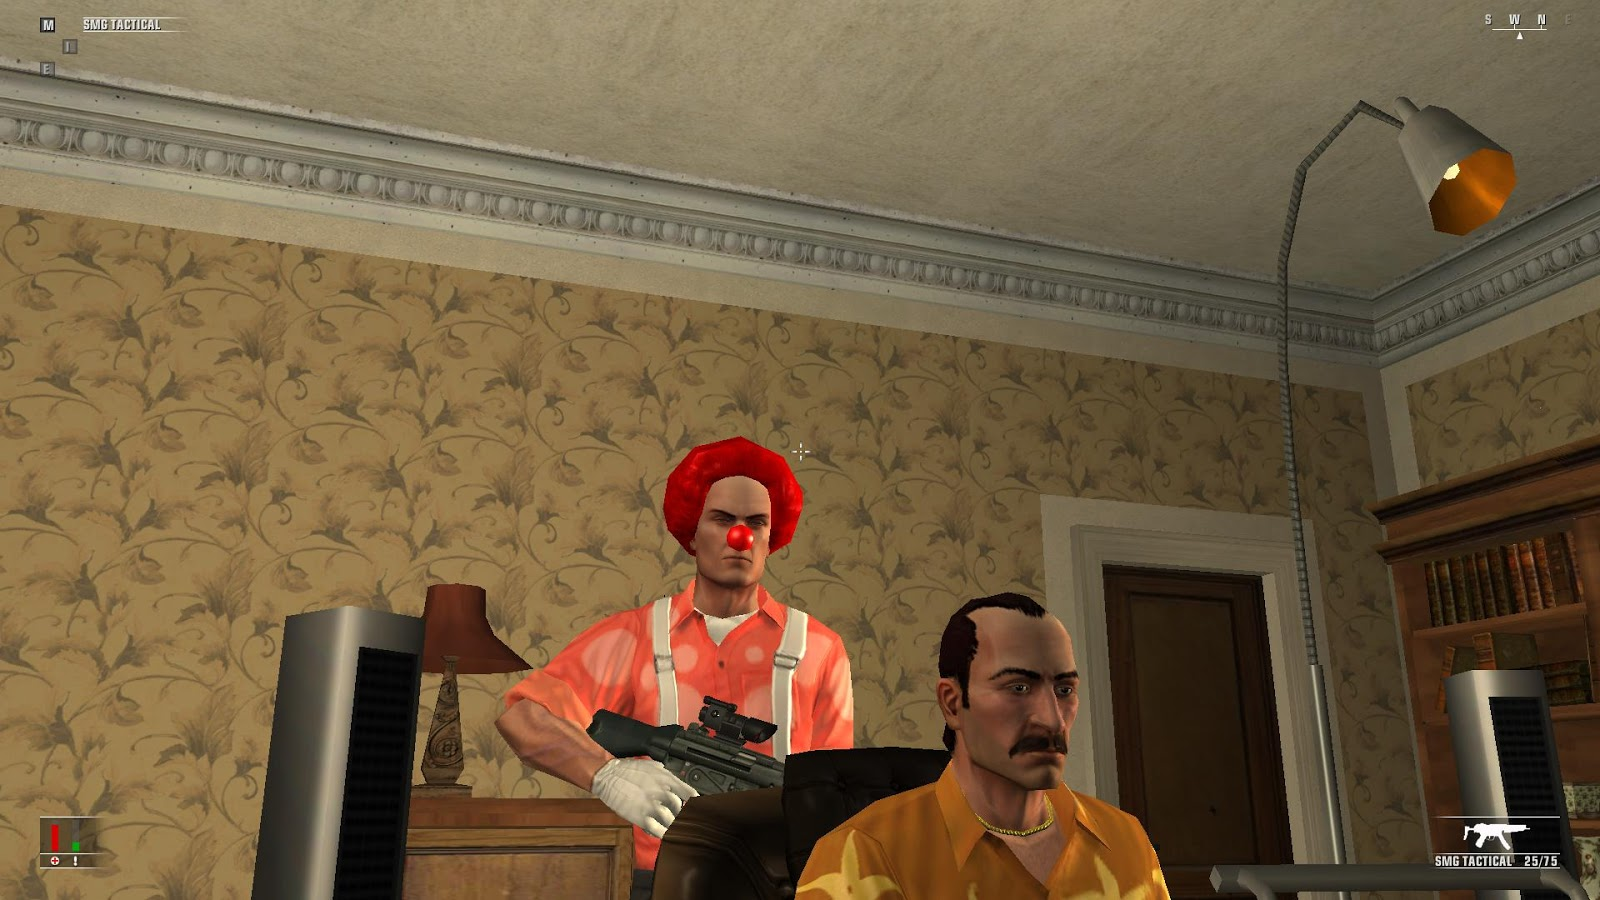 Download sound files for hitman blood money